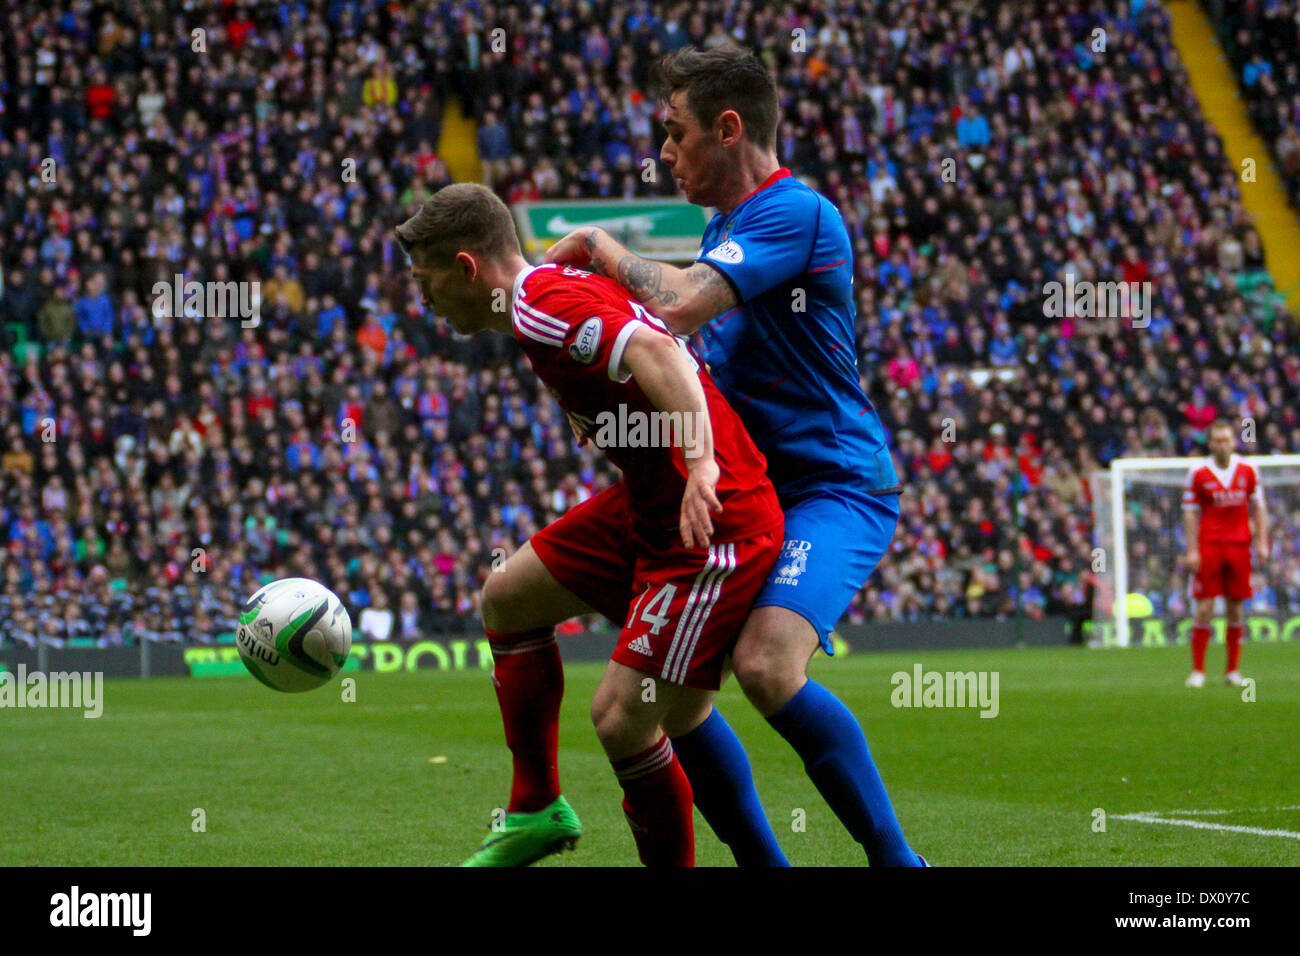 Glasgow, Scotland. 16th Mar, 2014. AFC sub Cammy Smith blocks ICT's Greg Tansey during the Scottish League Cup Final between Aberdeen FC and Inverness Caledonian Thistle FC at Celtic Park. Aberdeen won 4-2 on penalties. Credit:  Action Plus Sports/Alamy Live News - Stock Image